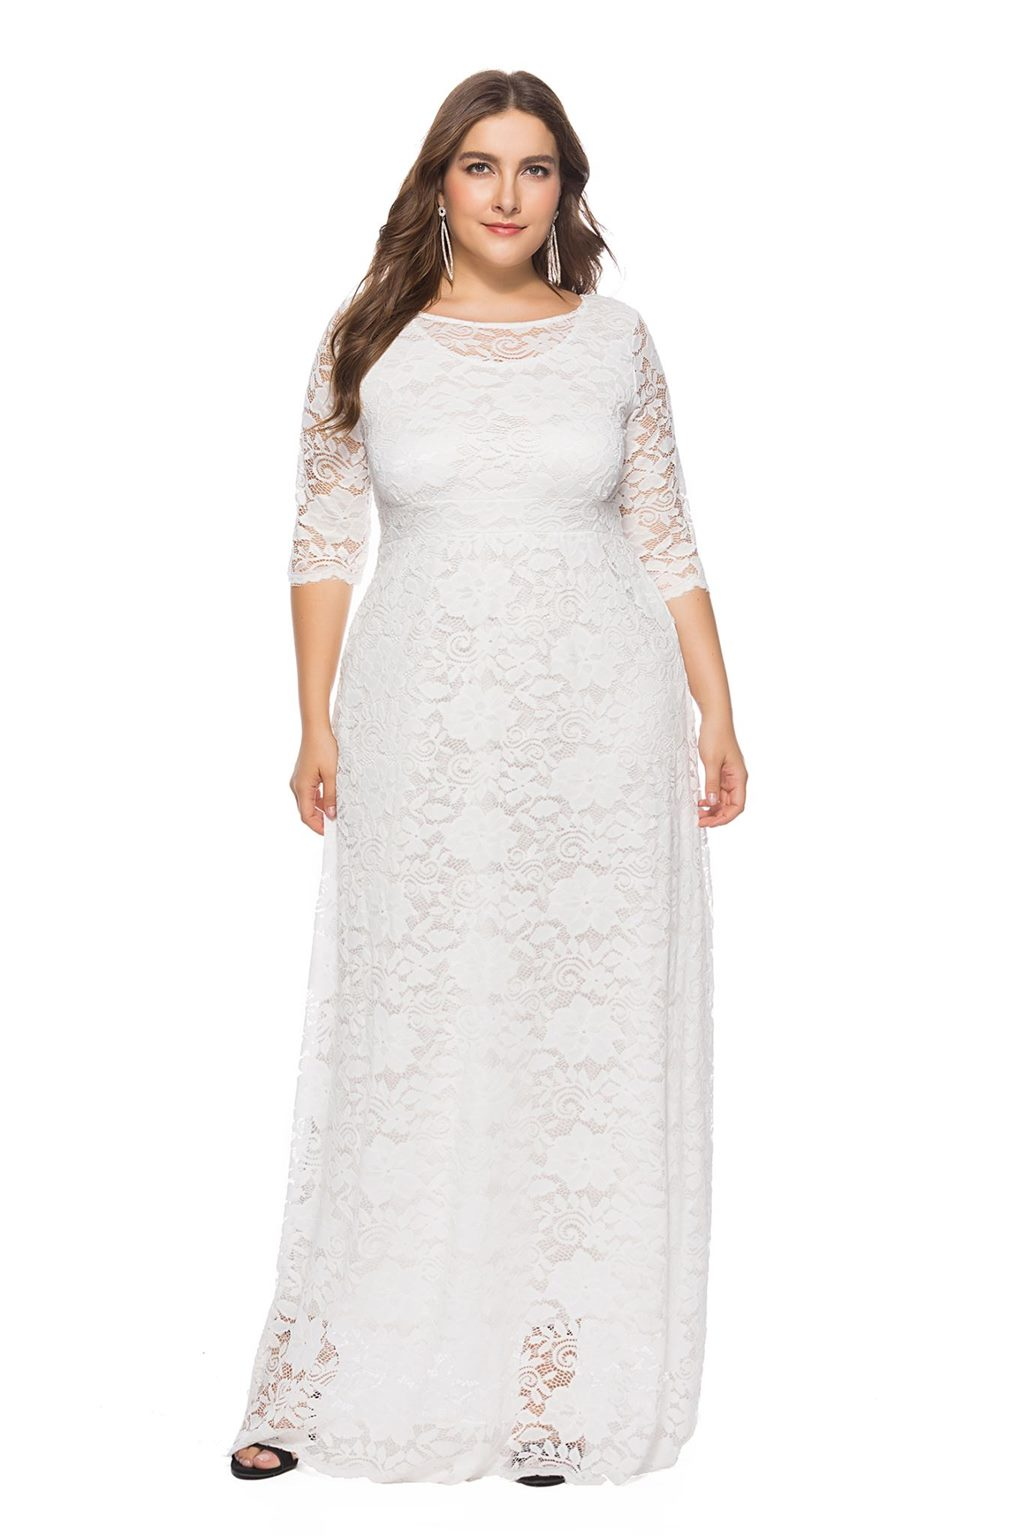 Ever-Pretty US Evening Wedding Gowns Lace Formal Mother Of Bride Dresses 08692